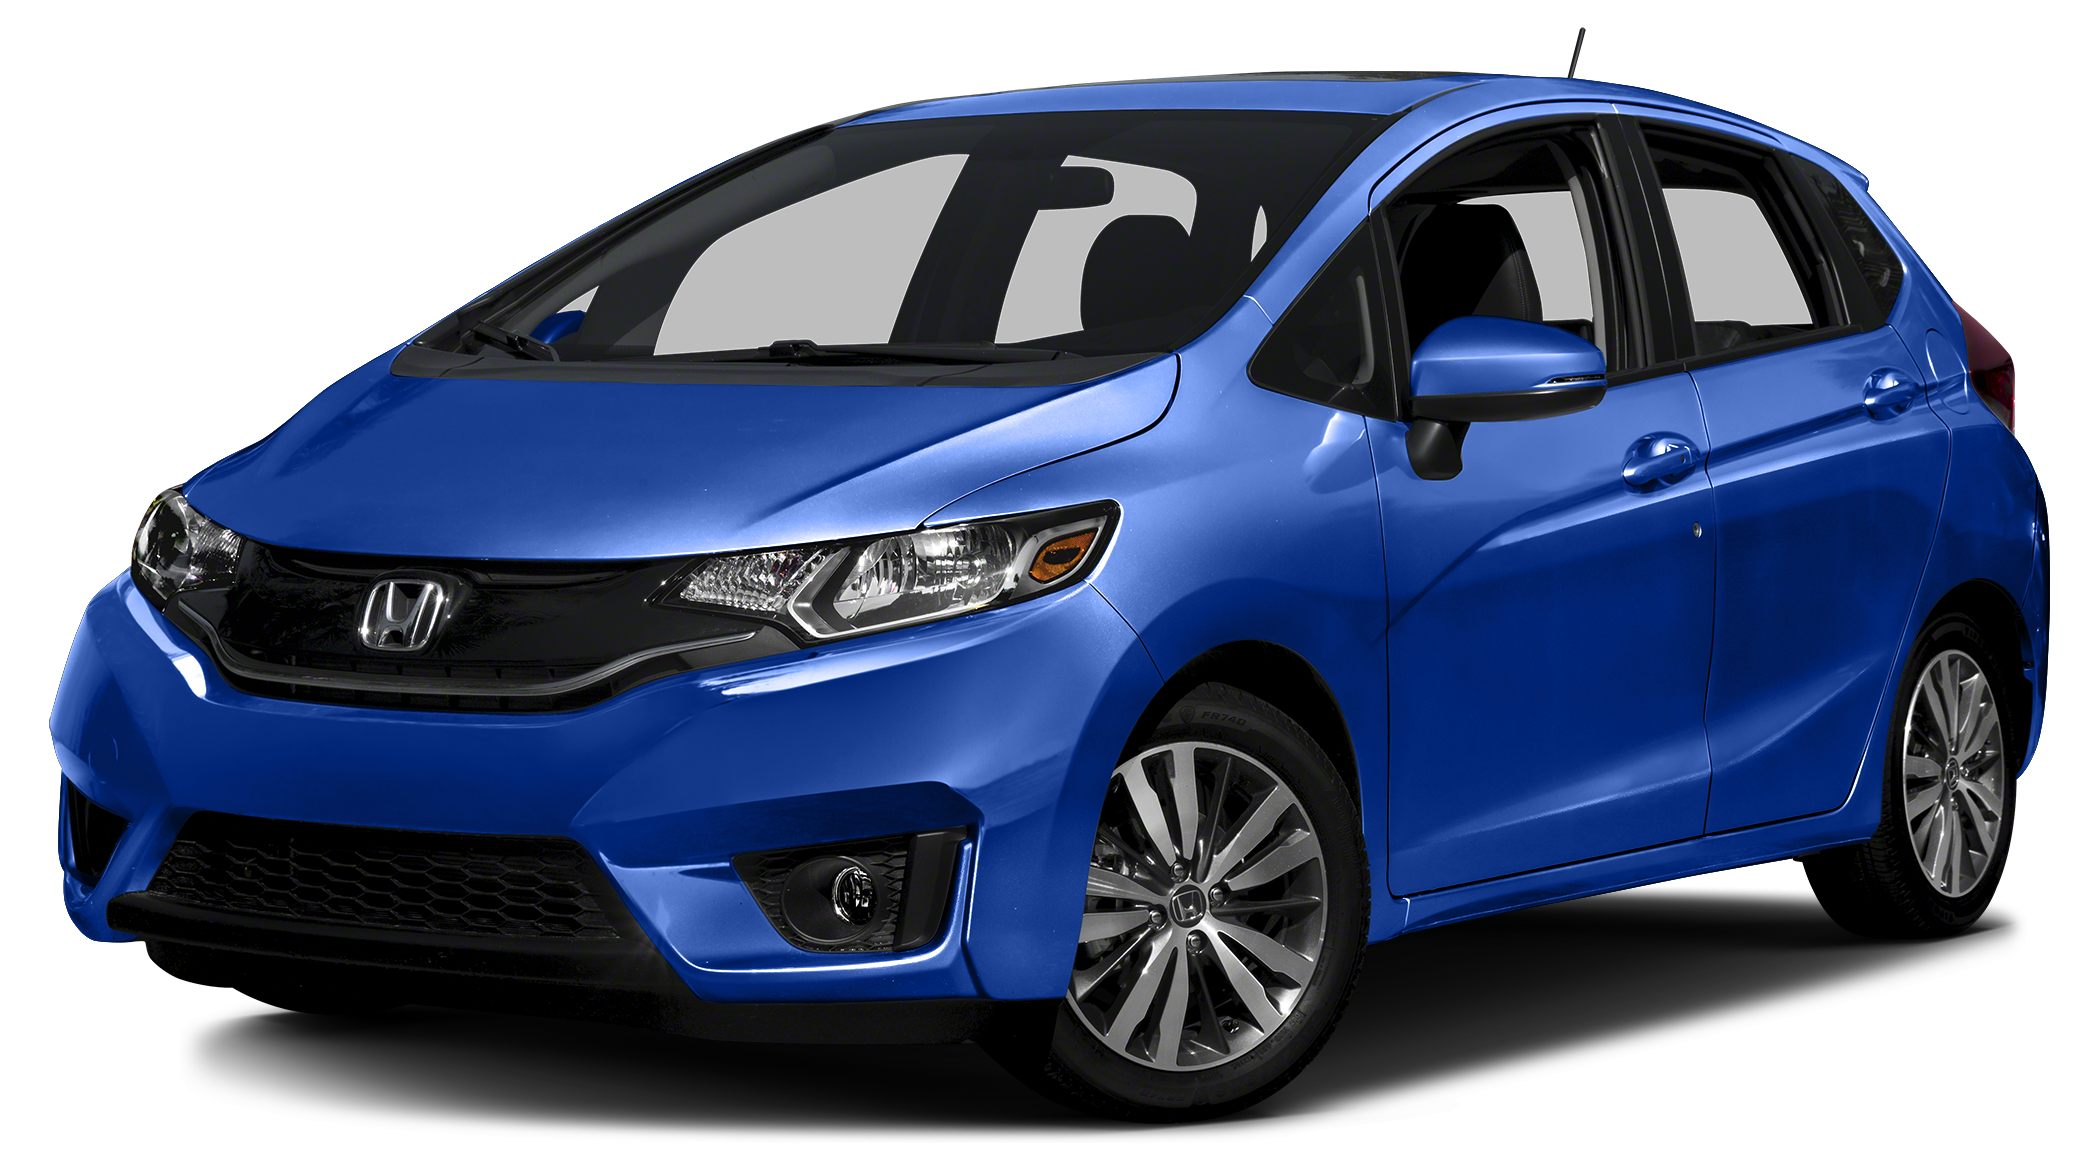 2016 Honda Fit EX-L Buy a new Honda from Diamond Valley Honda in Hemet and obtain Lifetime Oil Cha